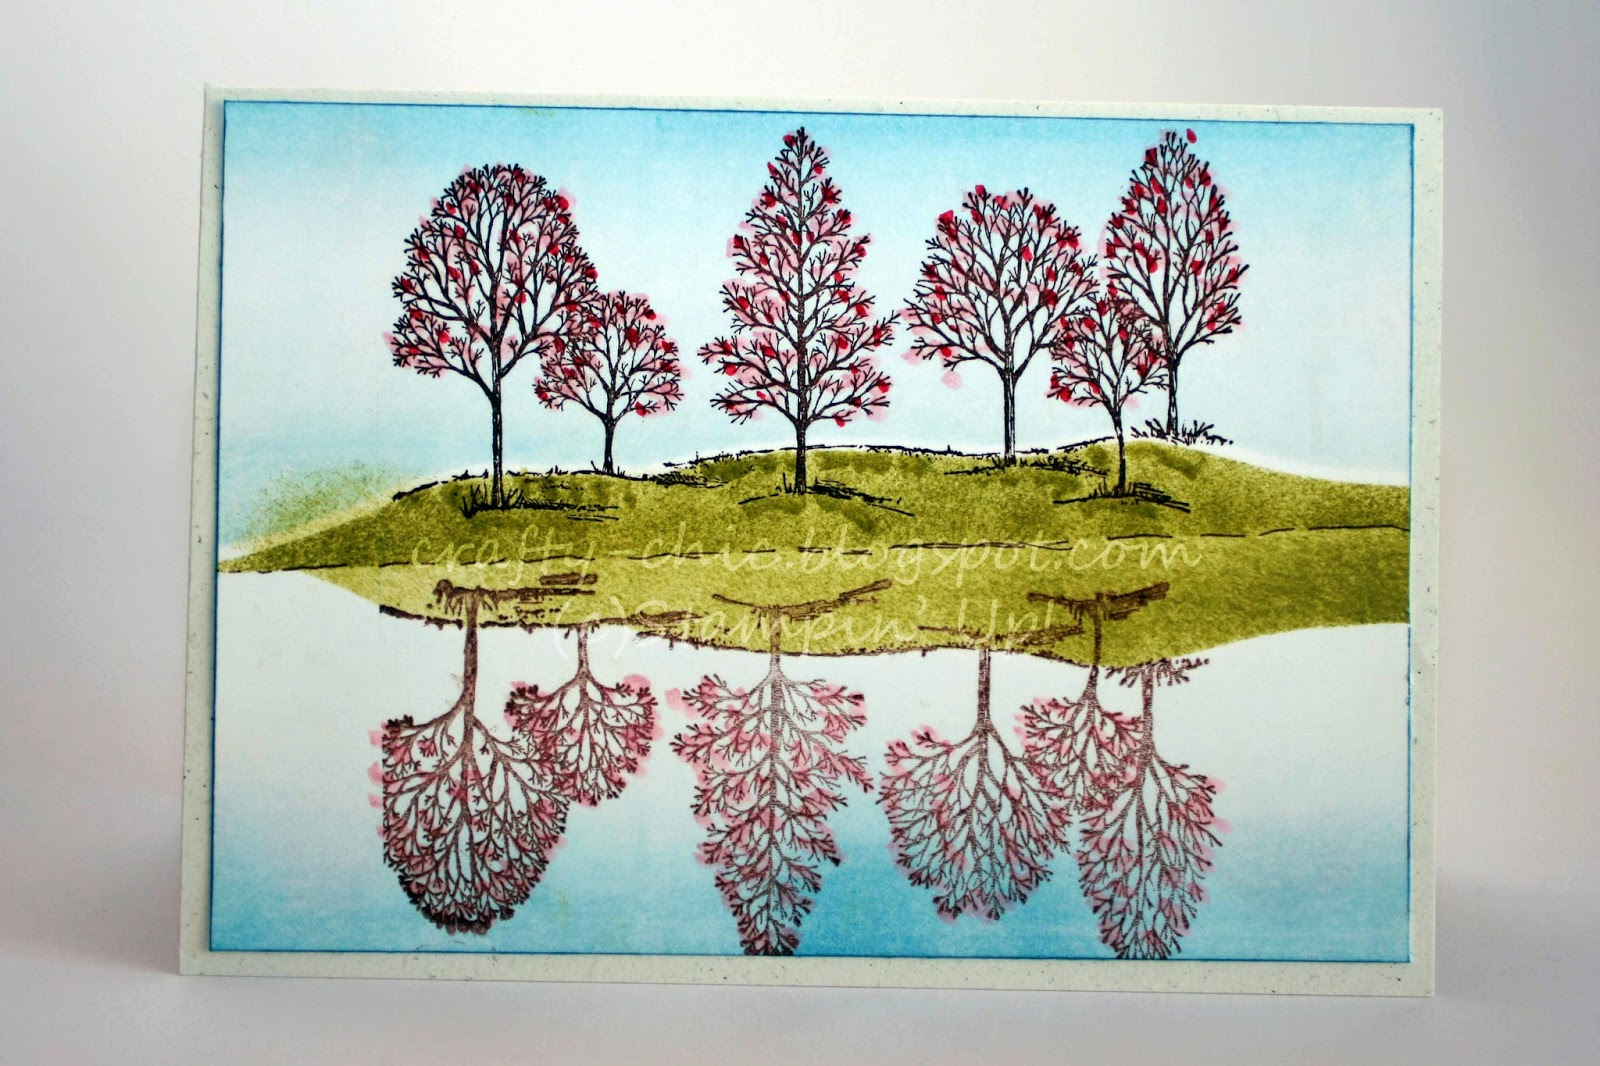 Stampin' Up! lovely as a tree with a reflection in the water